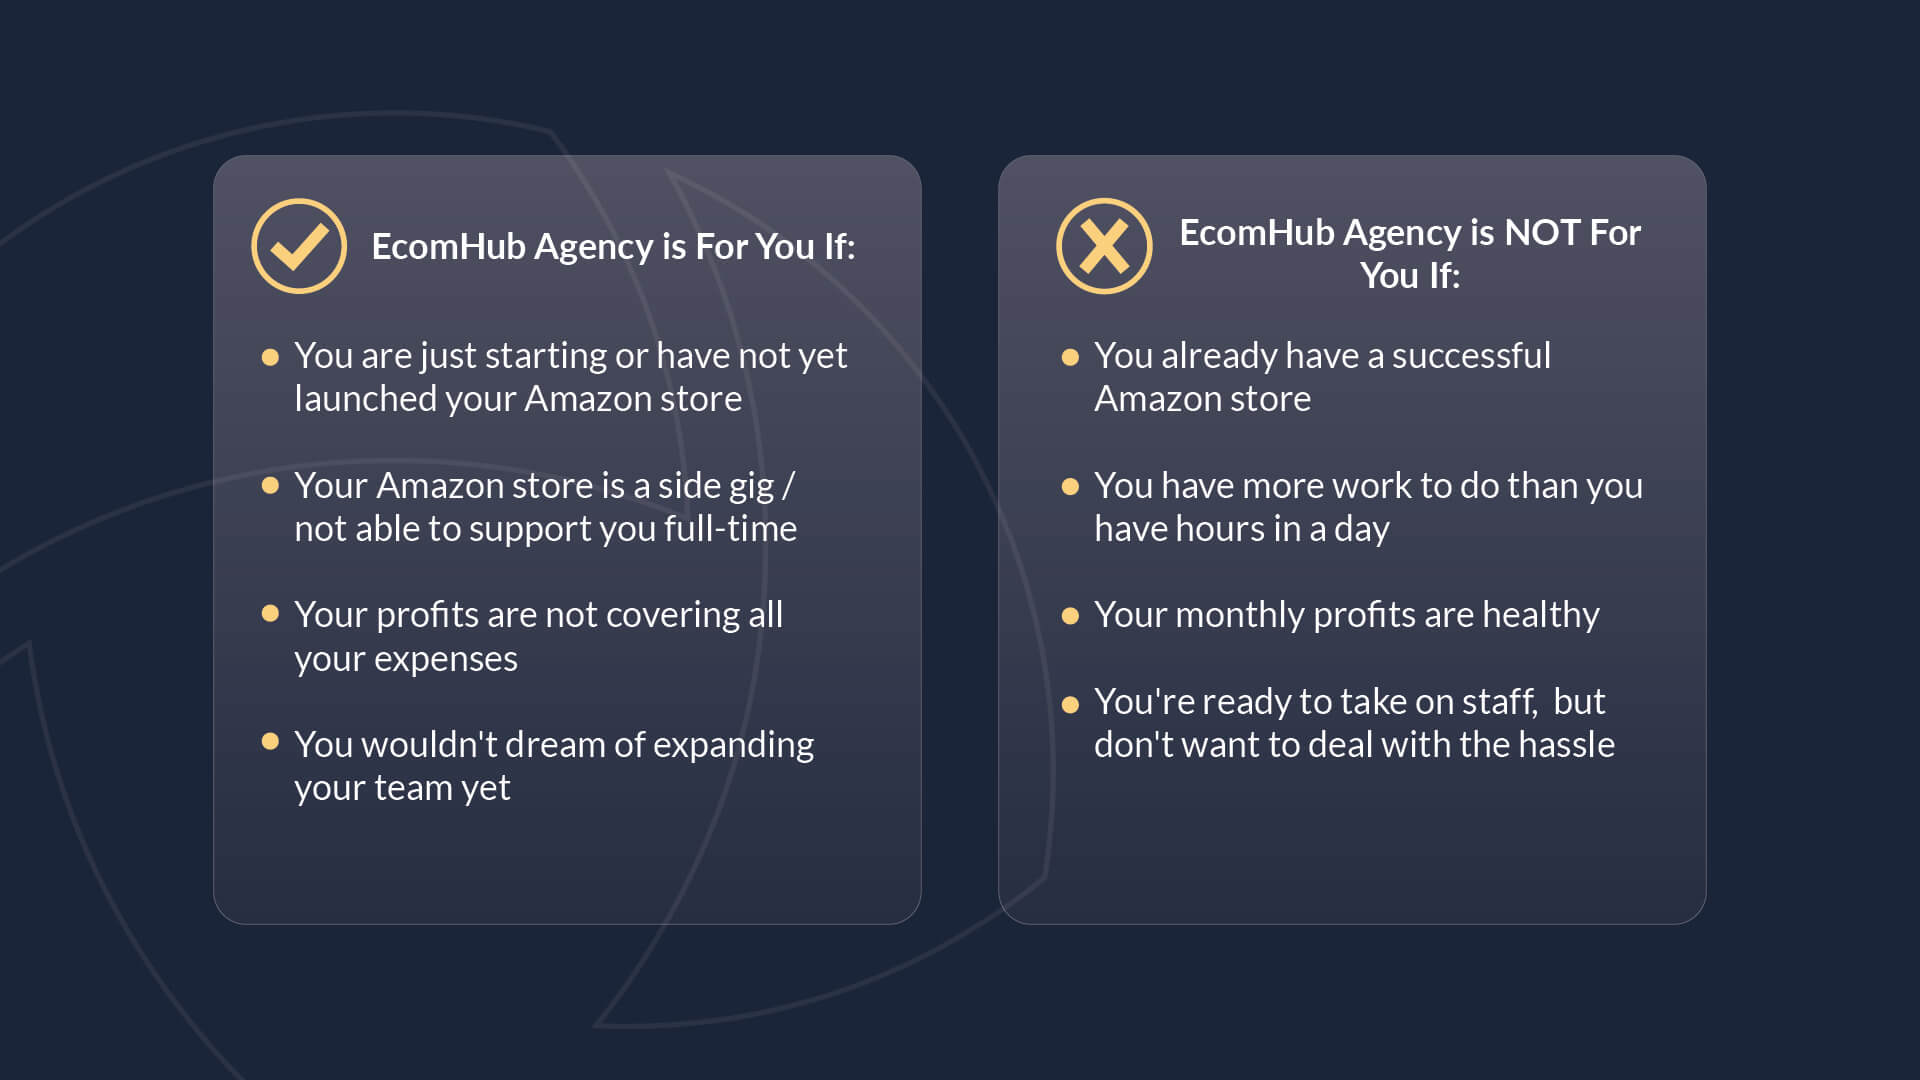 Chart comparing how you know EcomHub Agency is for you and how you know EcomHub Agency is not for you.